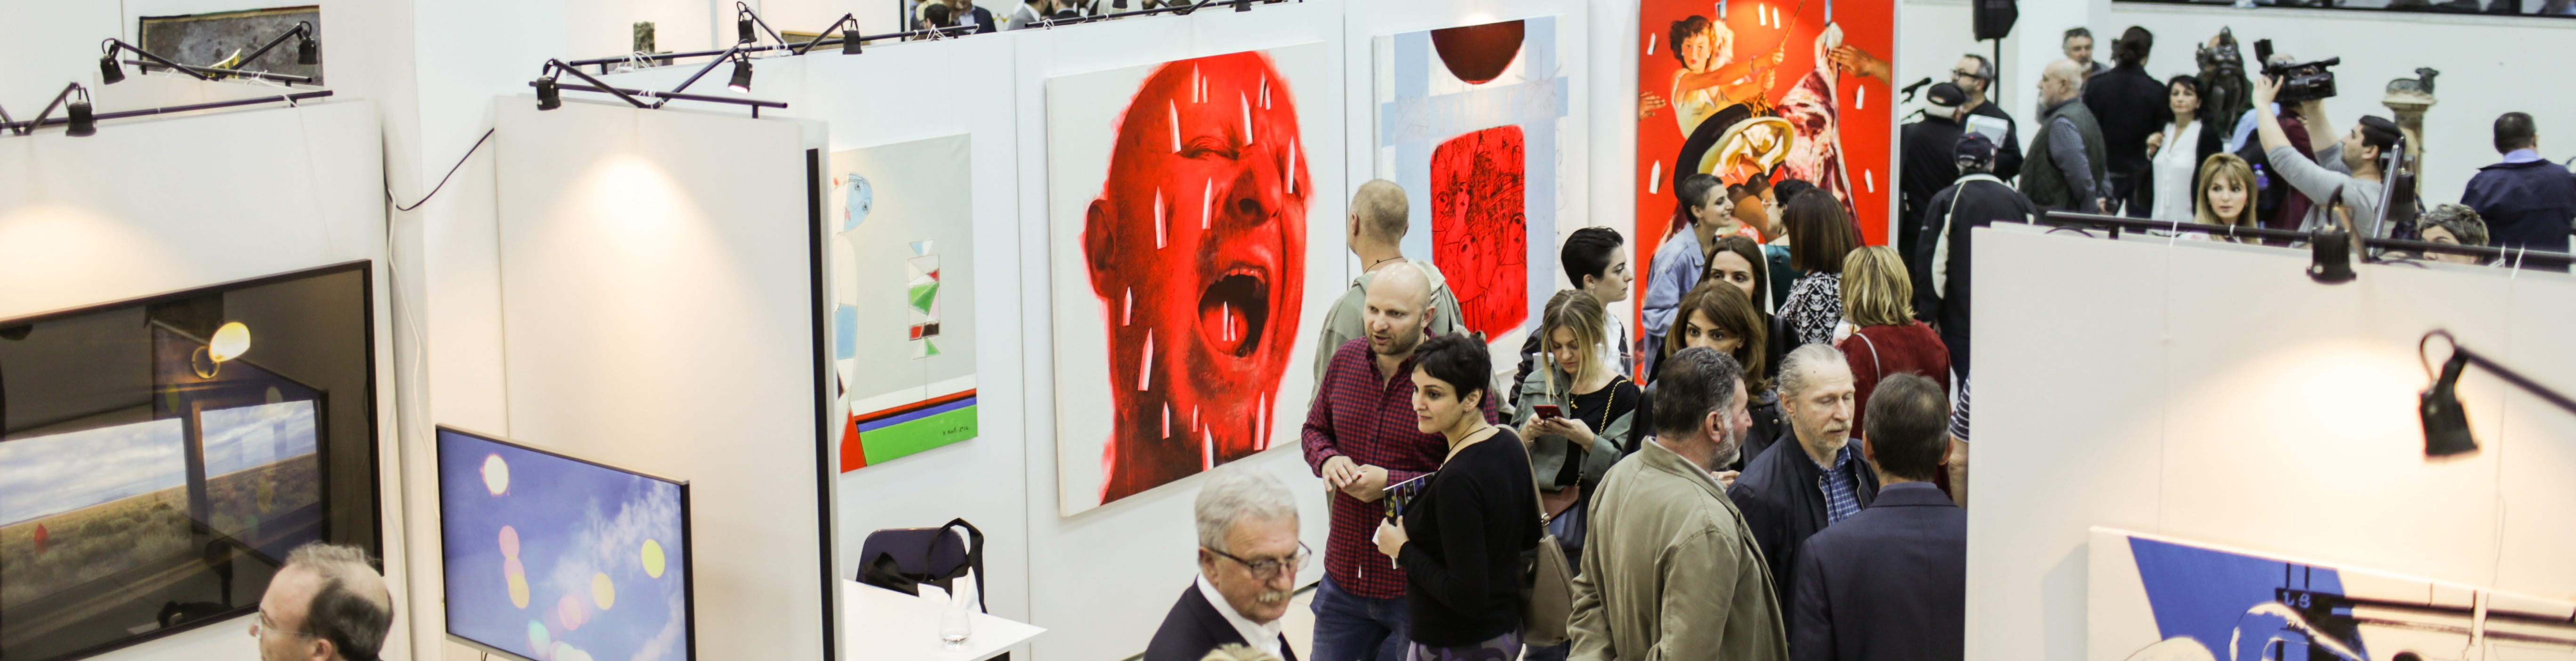 Melbourne Art Fair